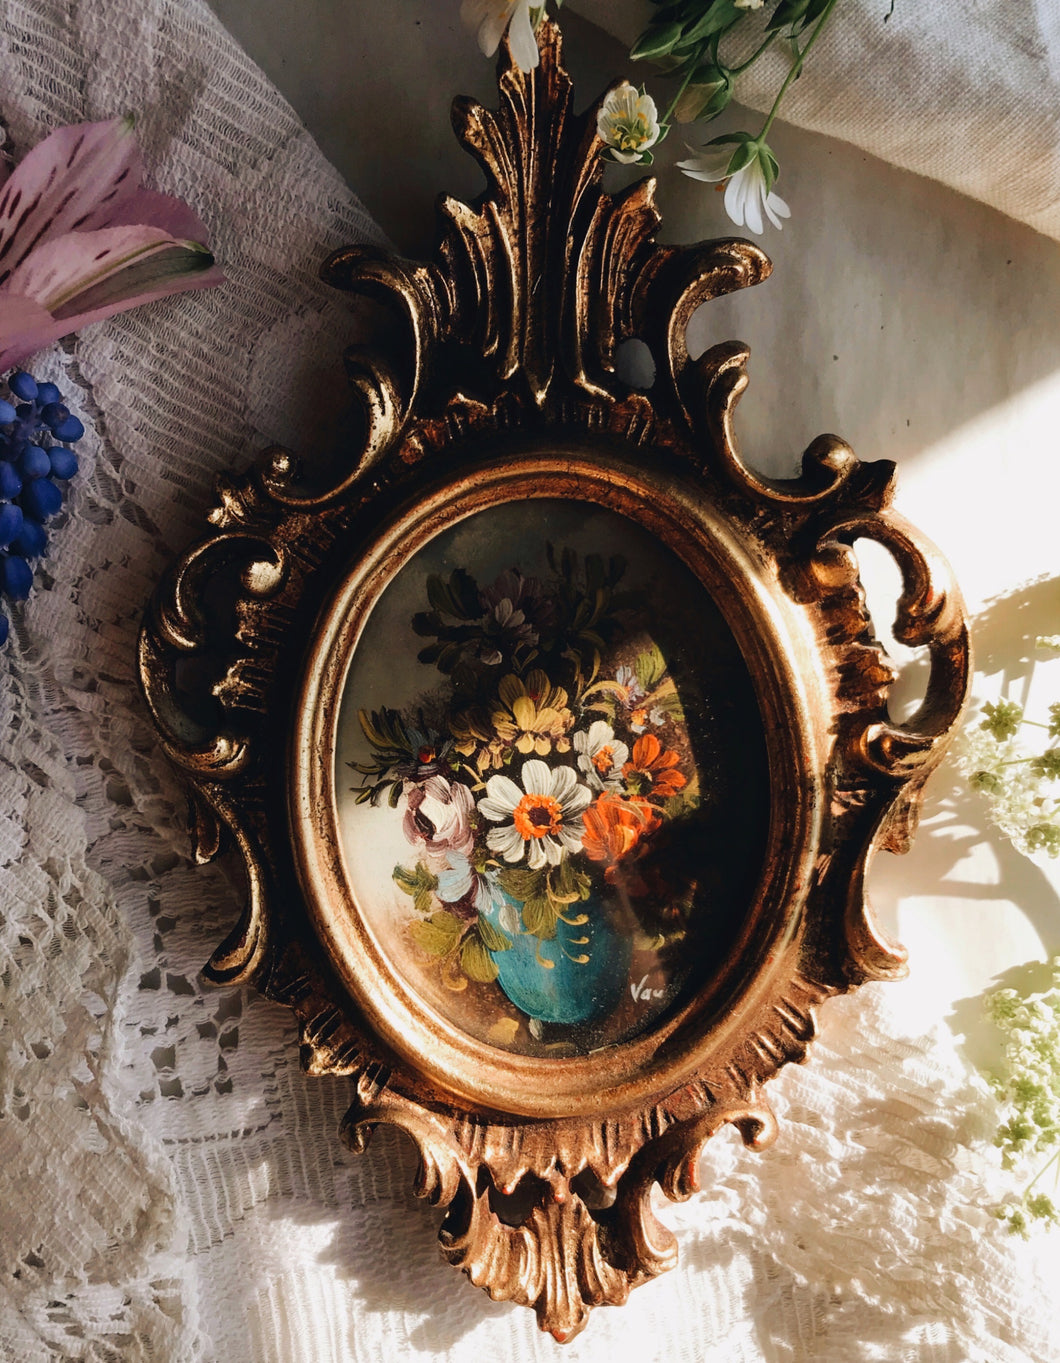 Antique French Rococo Signed Van Holt ~ Early 19th Century Floral Oil Painting